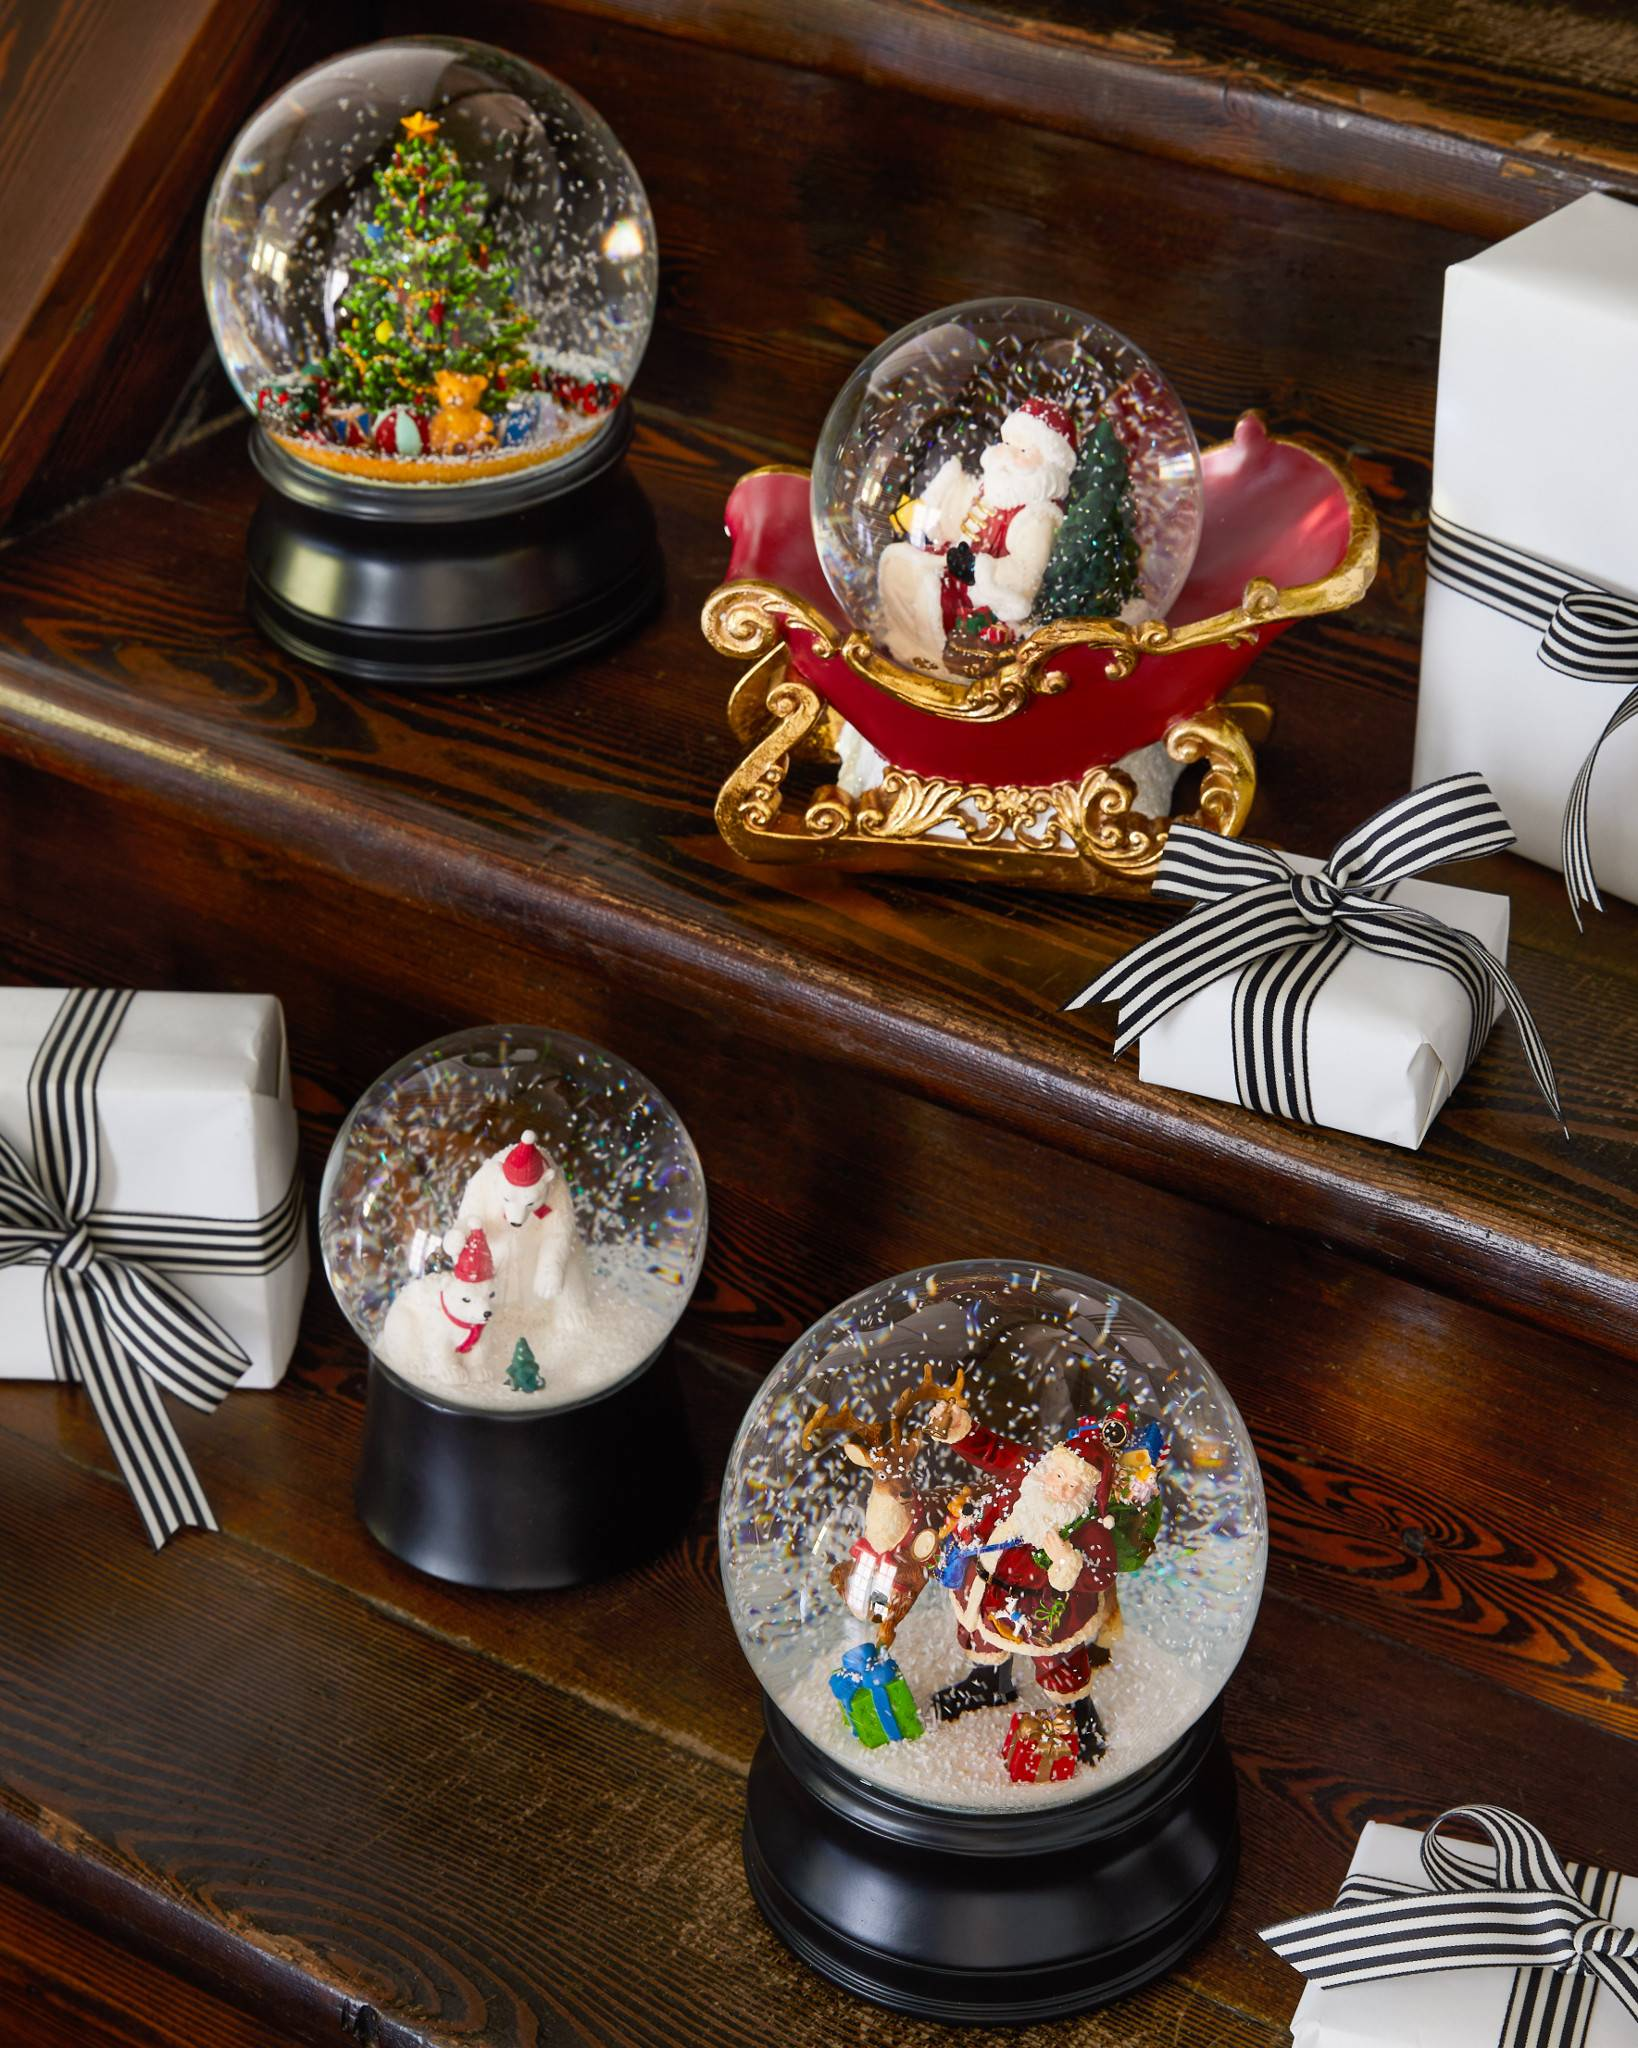 christmas moments musical snow globe by balsam hill - Christmas Musical Snow Globes